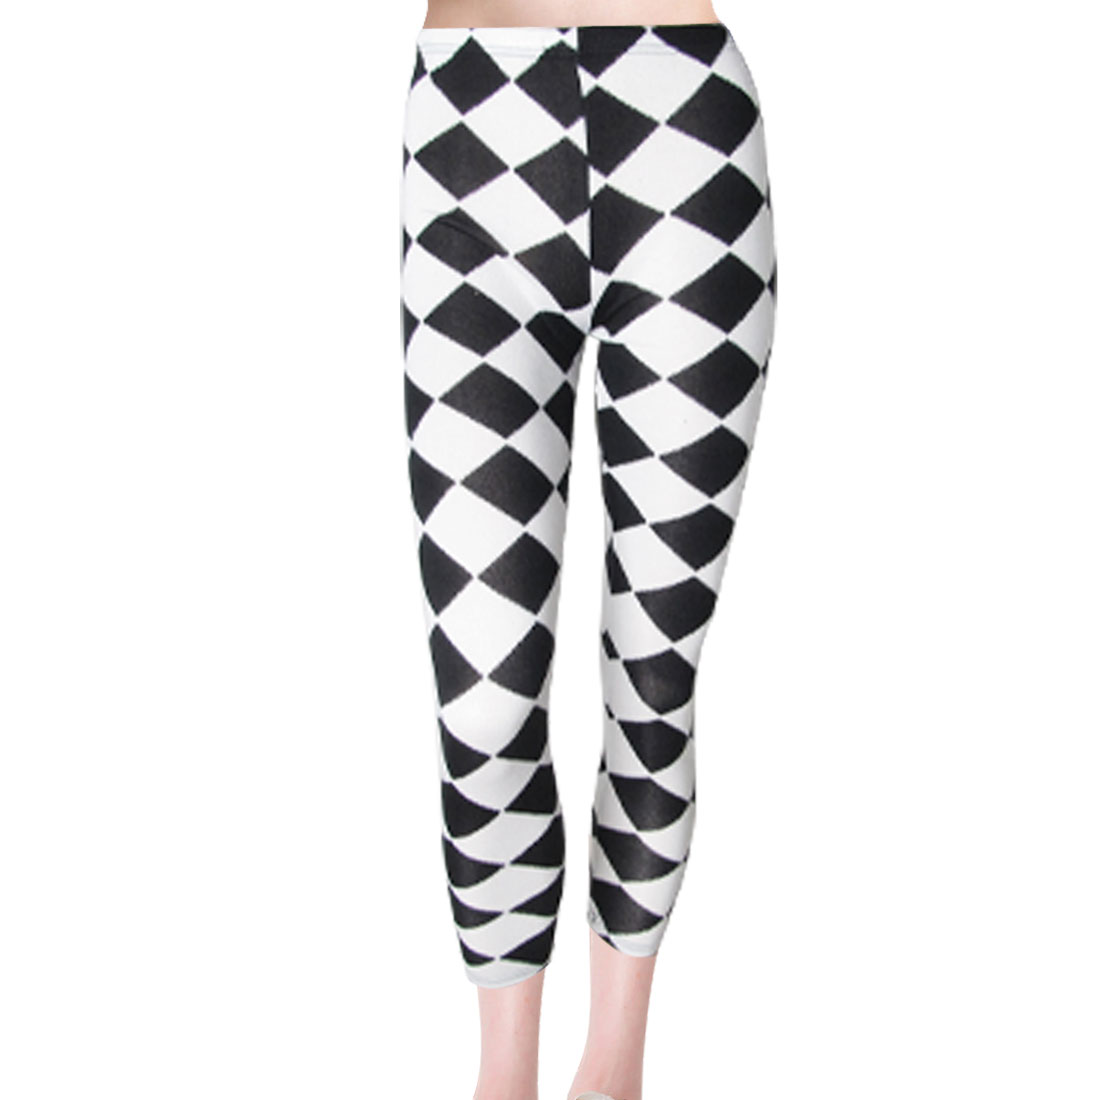 Women Elastic Waist Rib Knit Argyle Leggings Tights White Black S